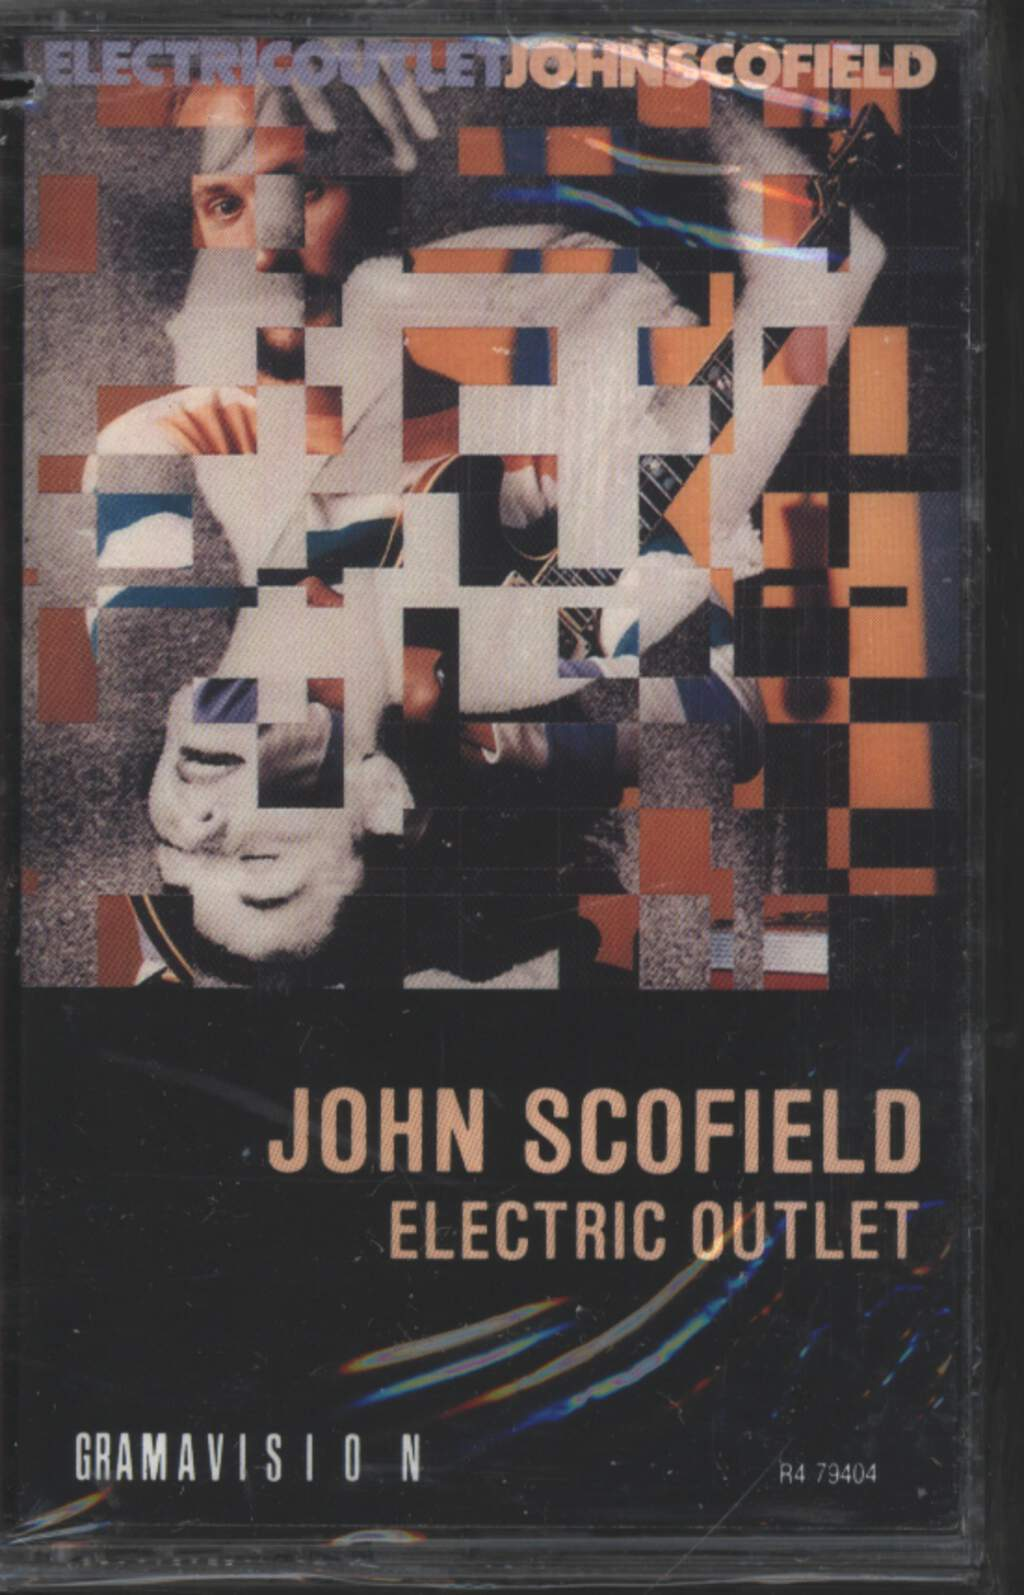 John Scofield: Electric Outlet, Tape